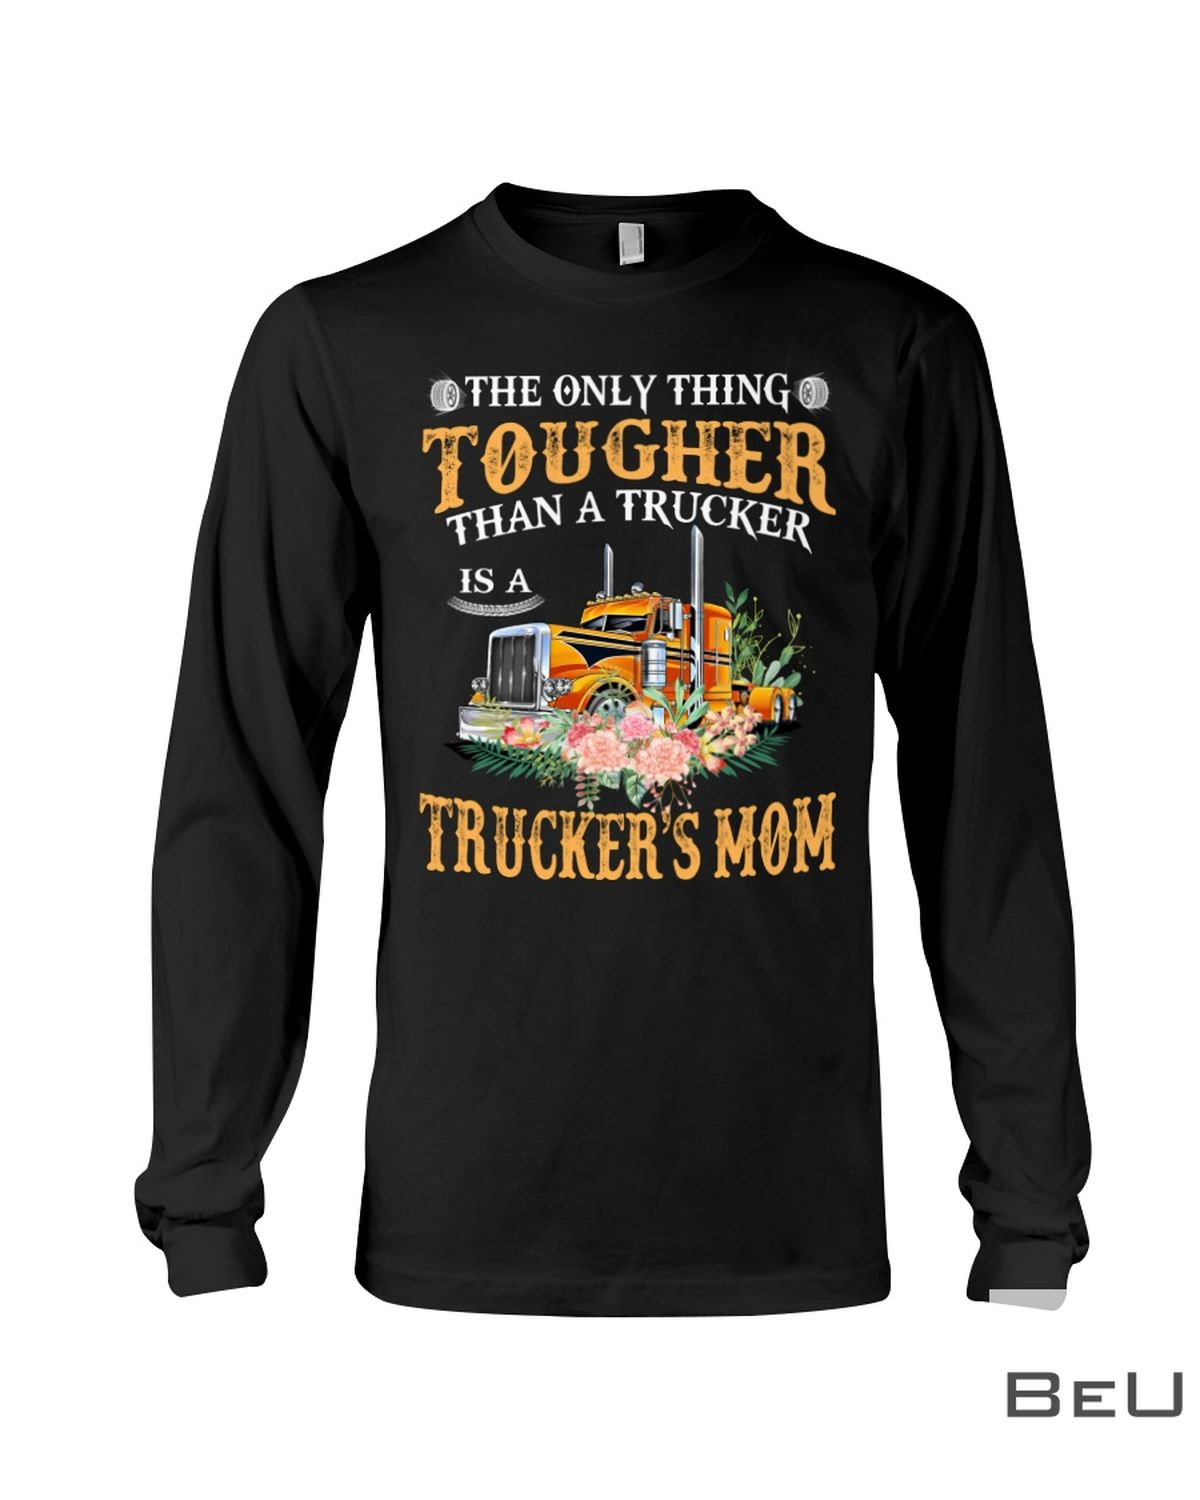 The Only Thing Tougher Than A Trucker Mom Shirtc